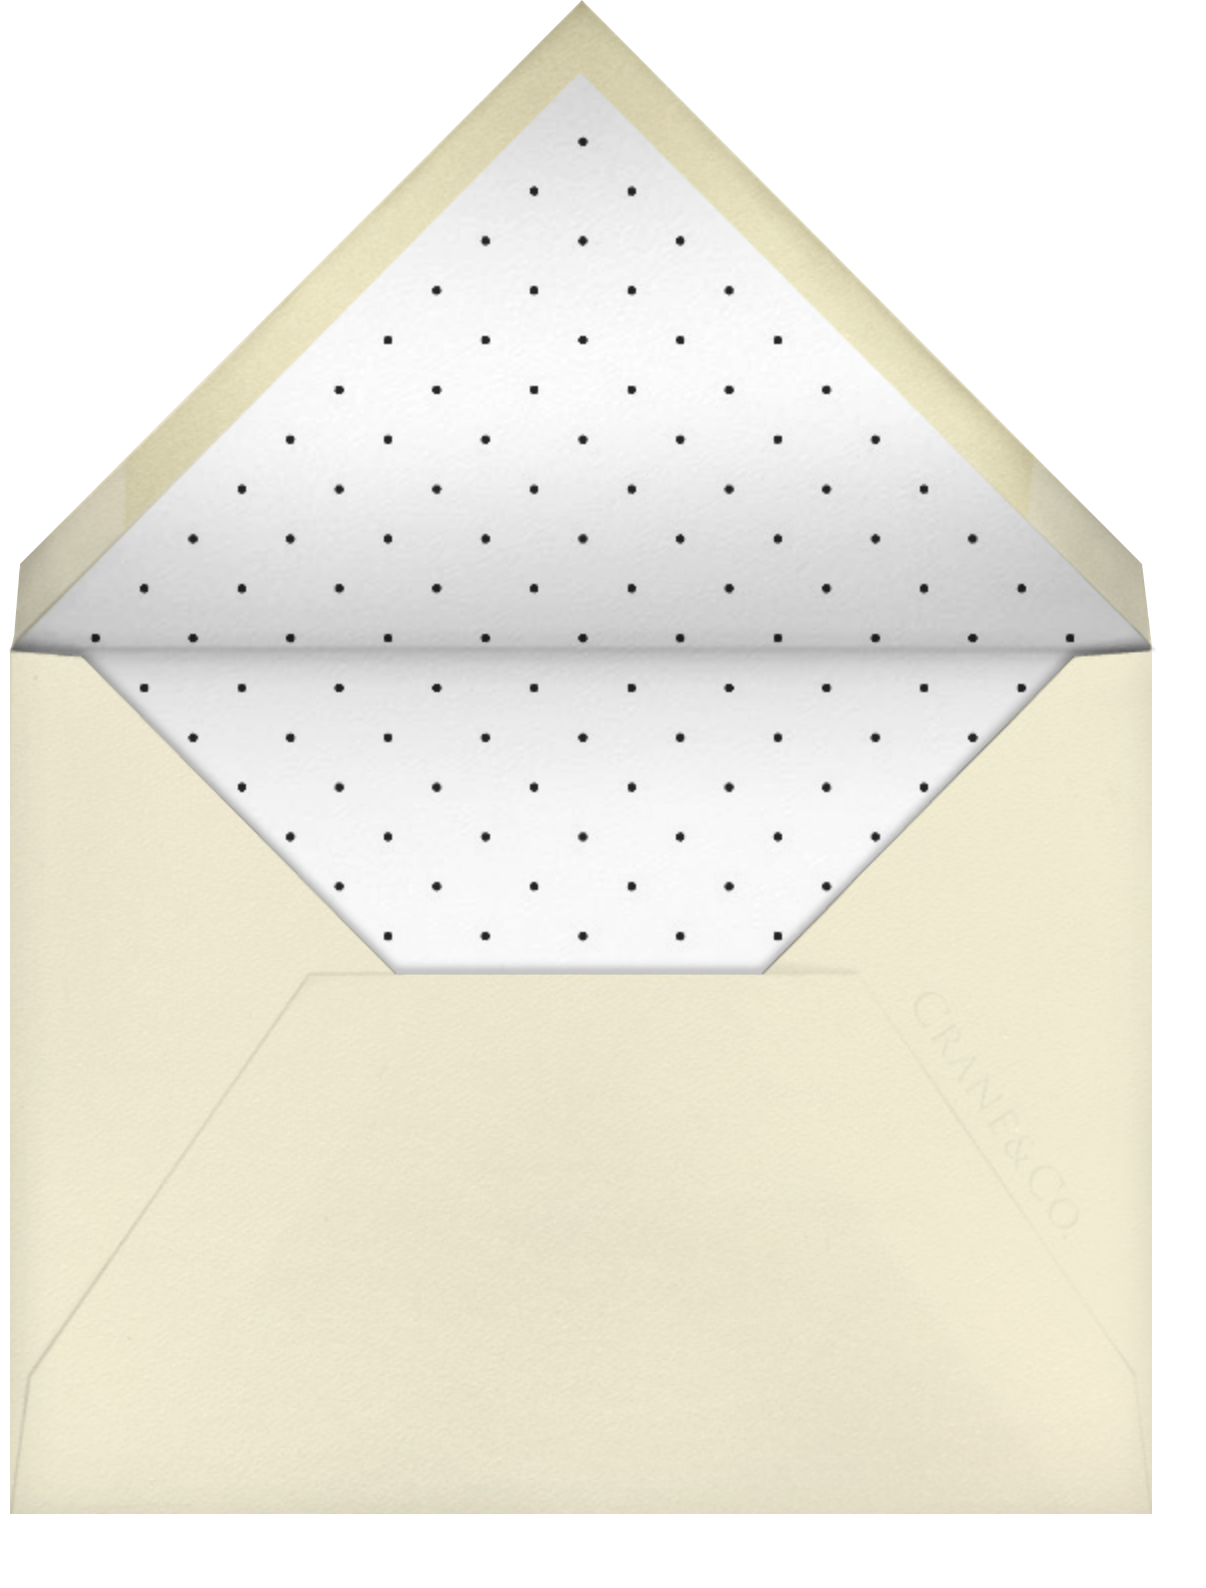 Tandem I (Save the Date) - kate spade new york - Gold and metallic - envelope back